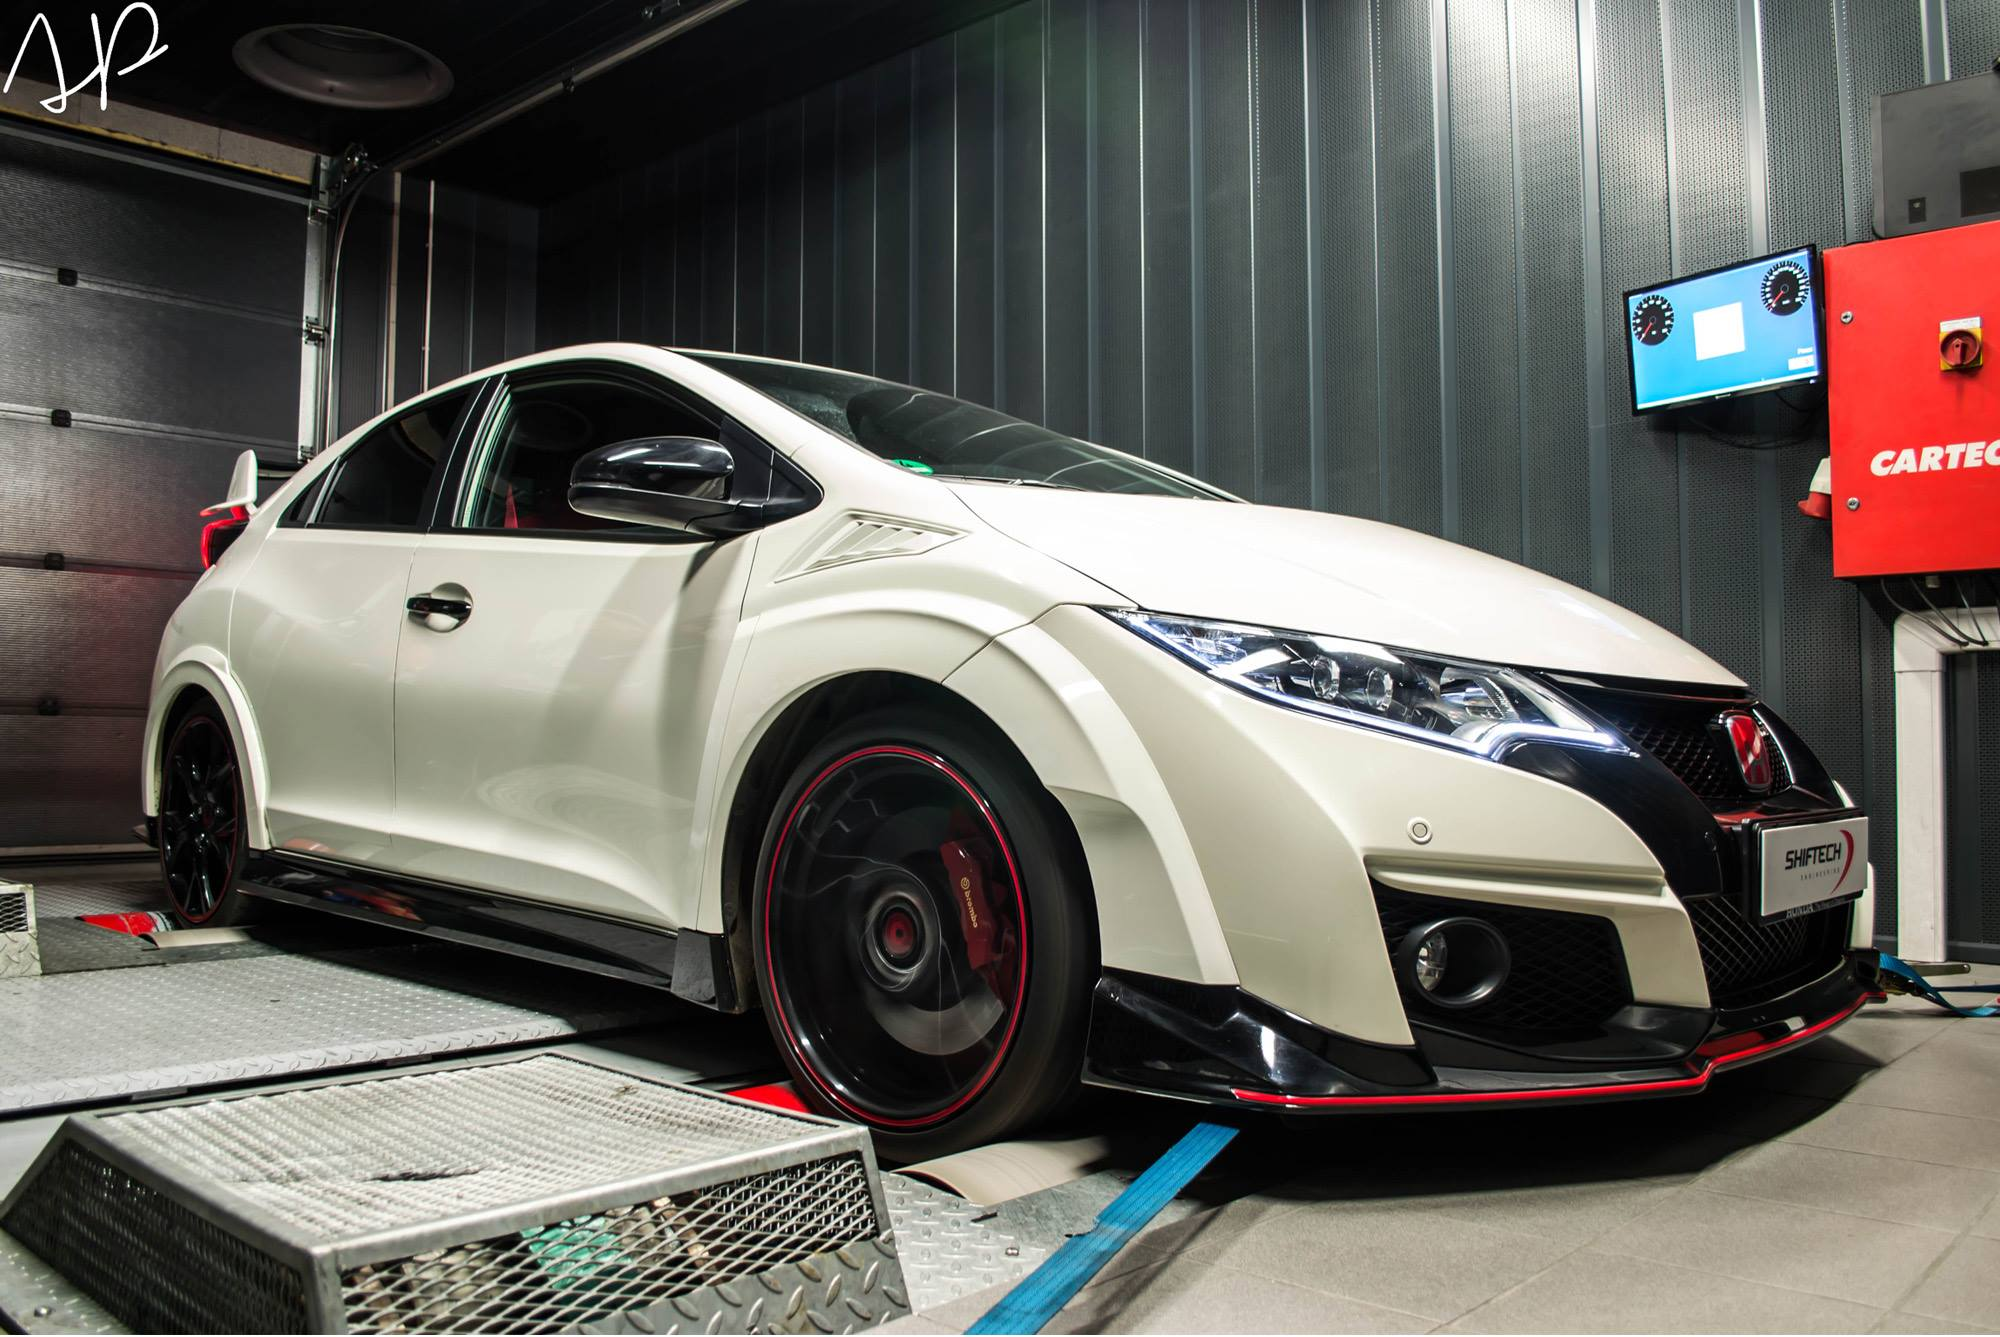 honda civic type r turbo engine tuned to 356 ps by. Black Bedroom Furniture Sets. Home Design Ideas